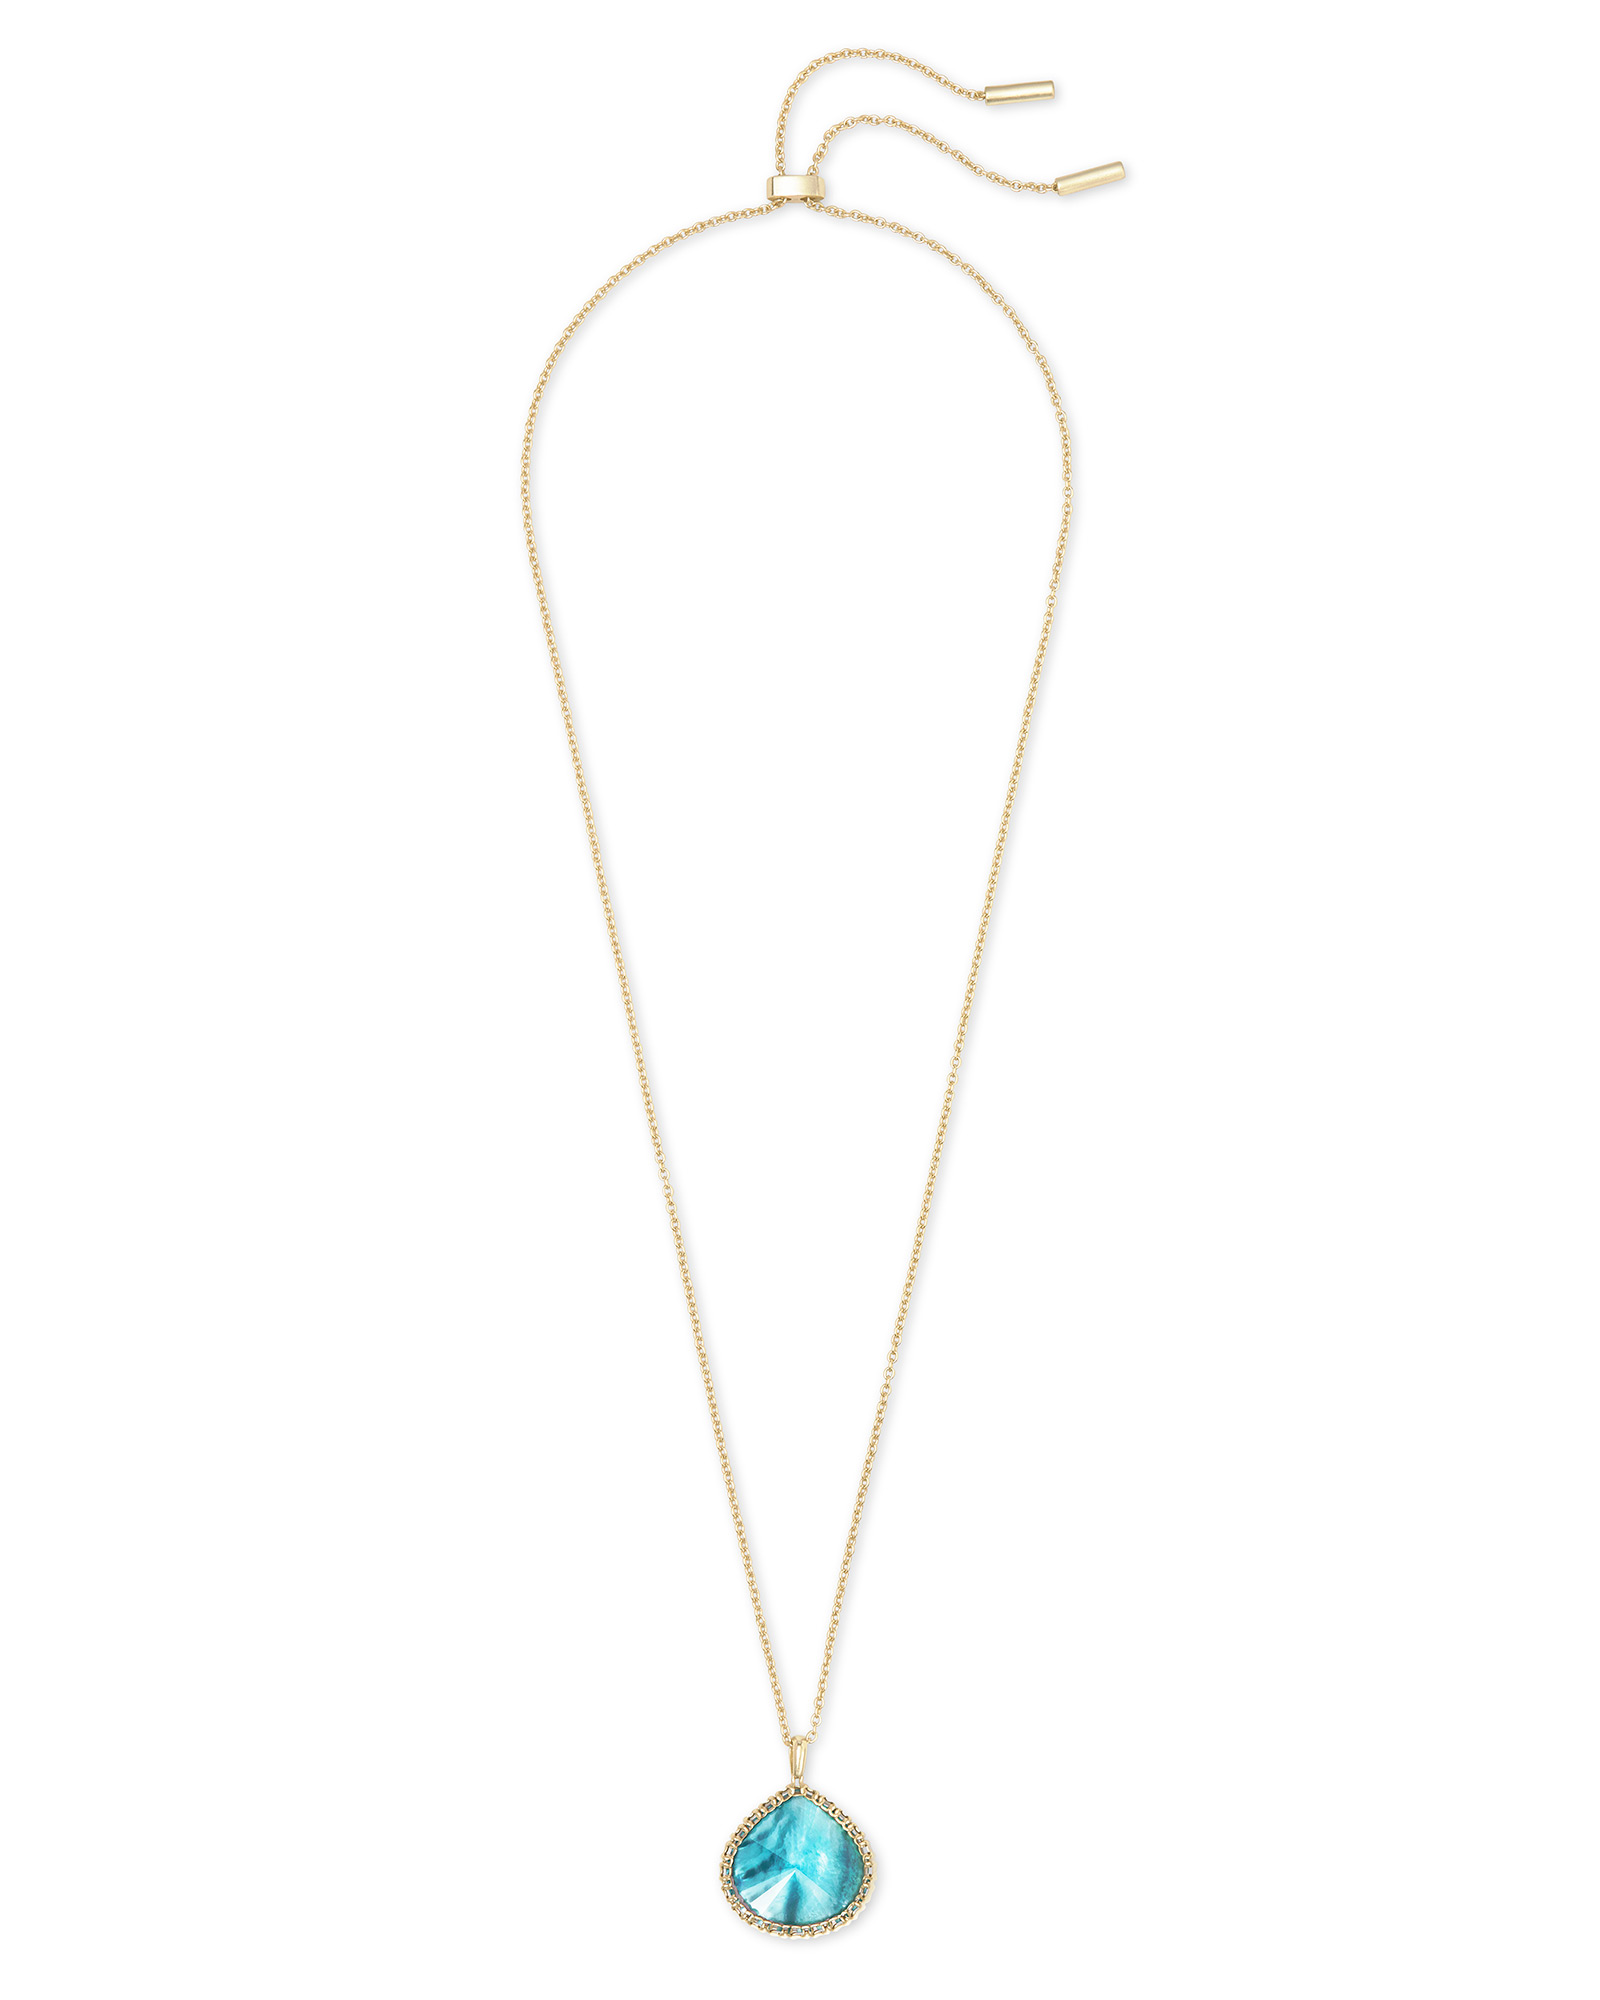 Kenzie Gold Pendant Necklace In Aqua Illusion